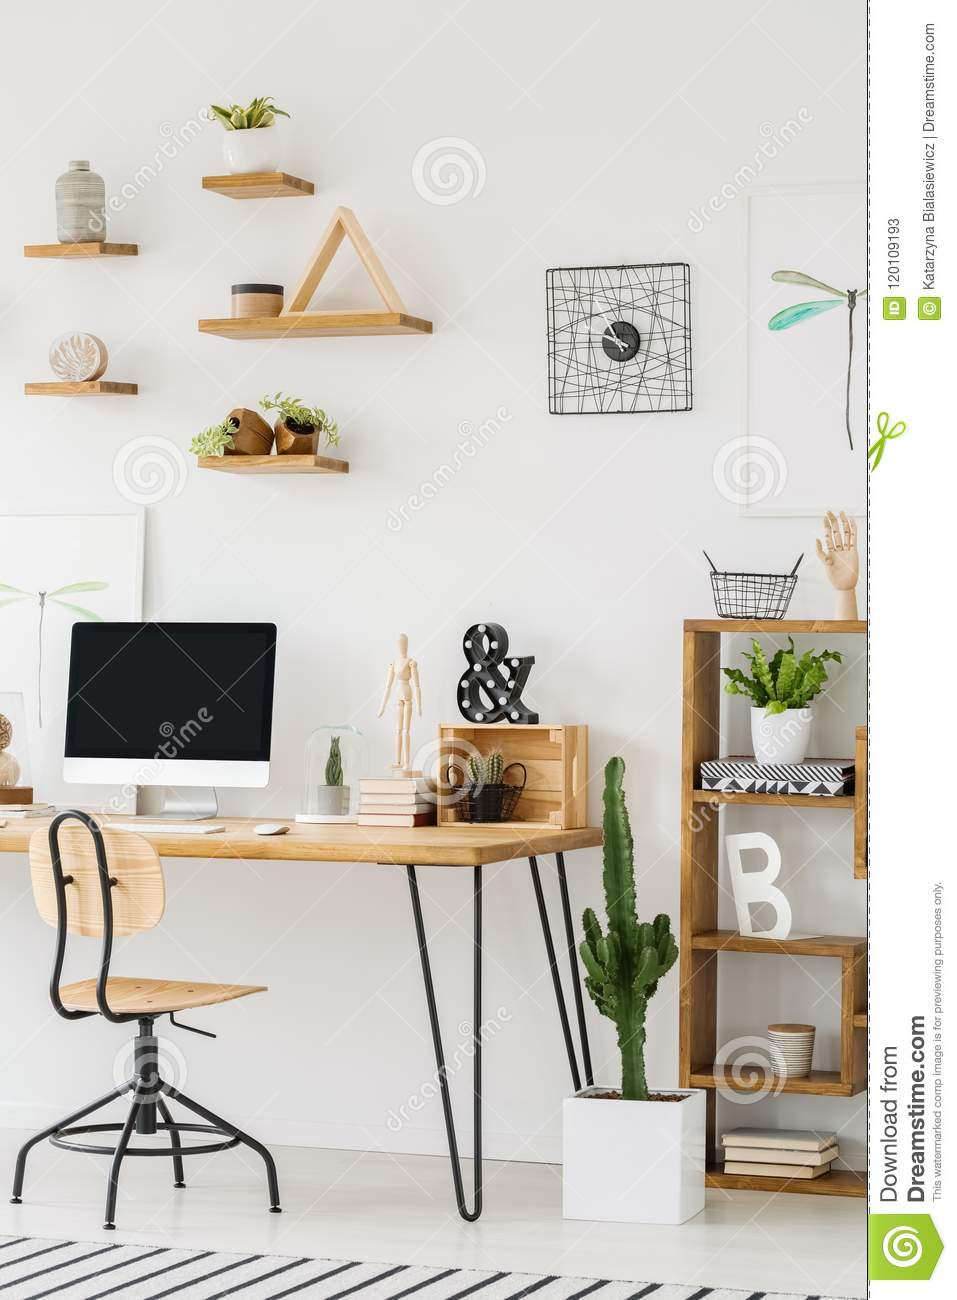 Wooden Desk With A Computer Chair Shelves On The Wall And